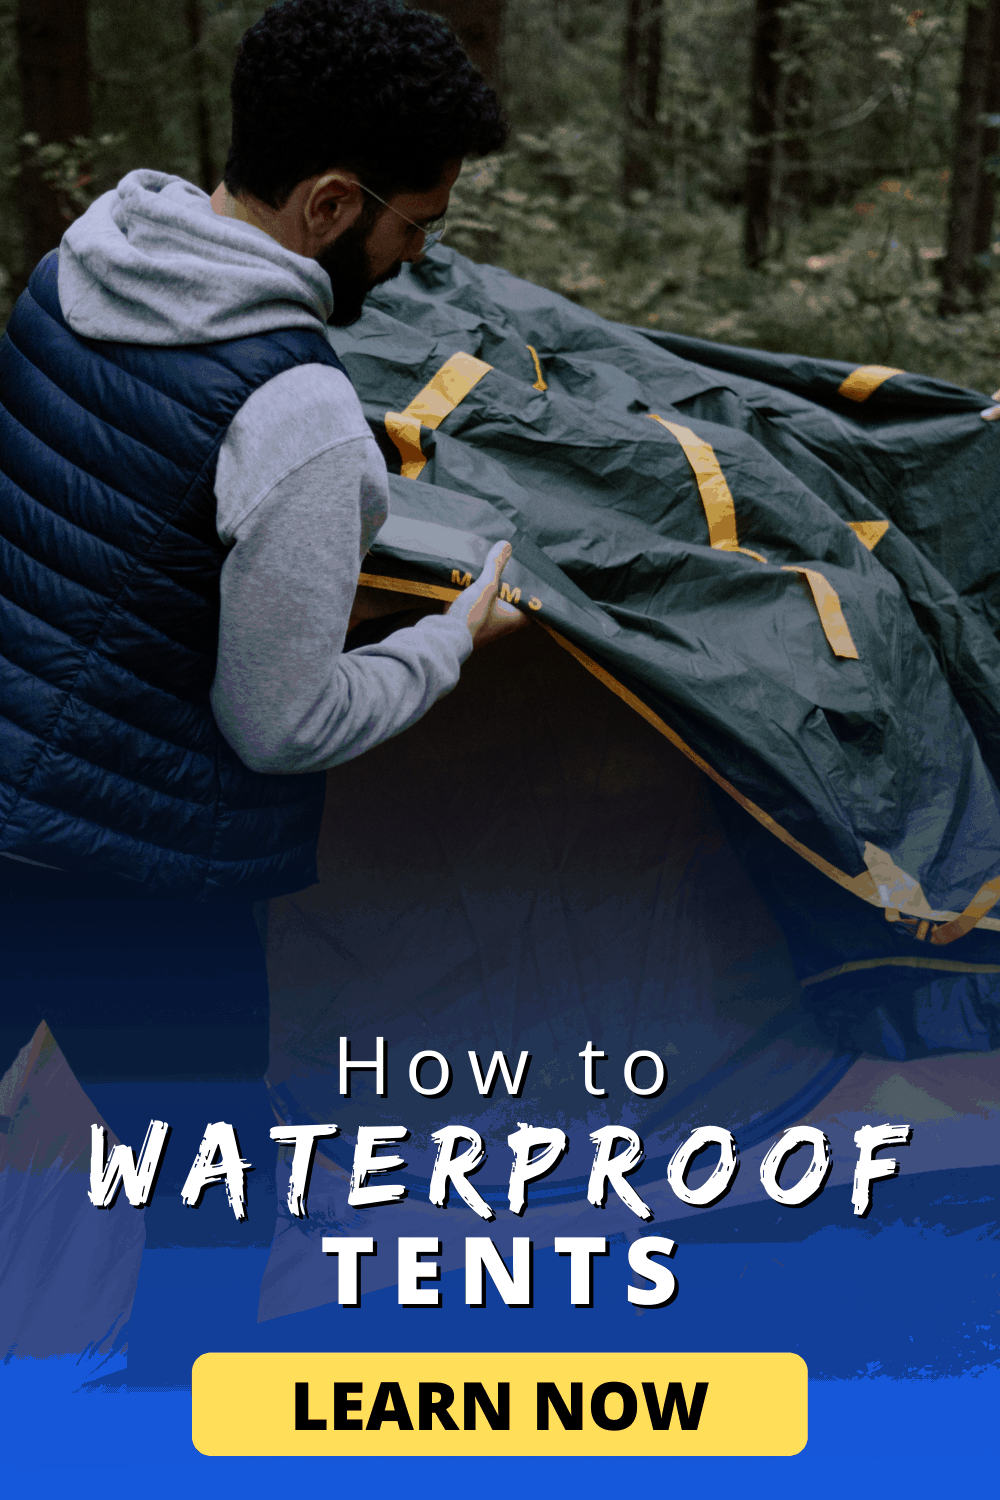 How to Waterproof Tents | Learn Now!